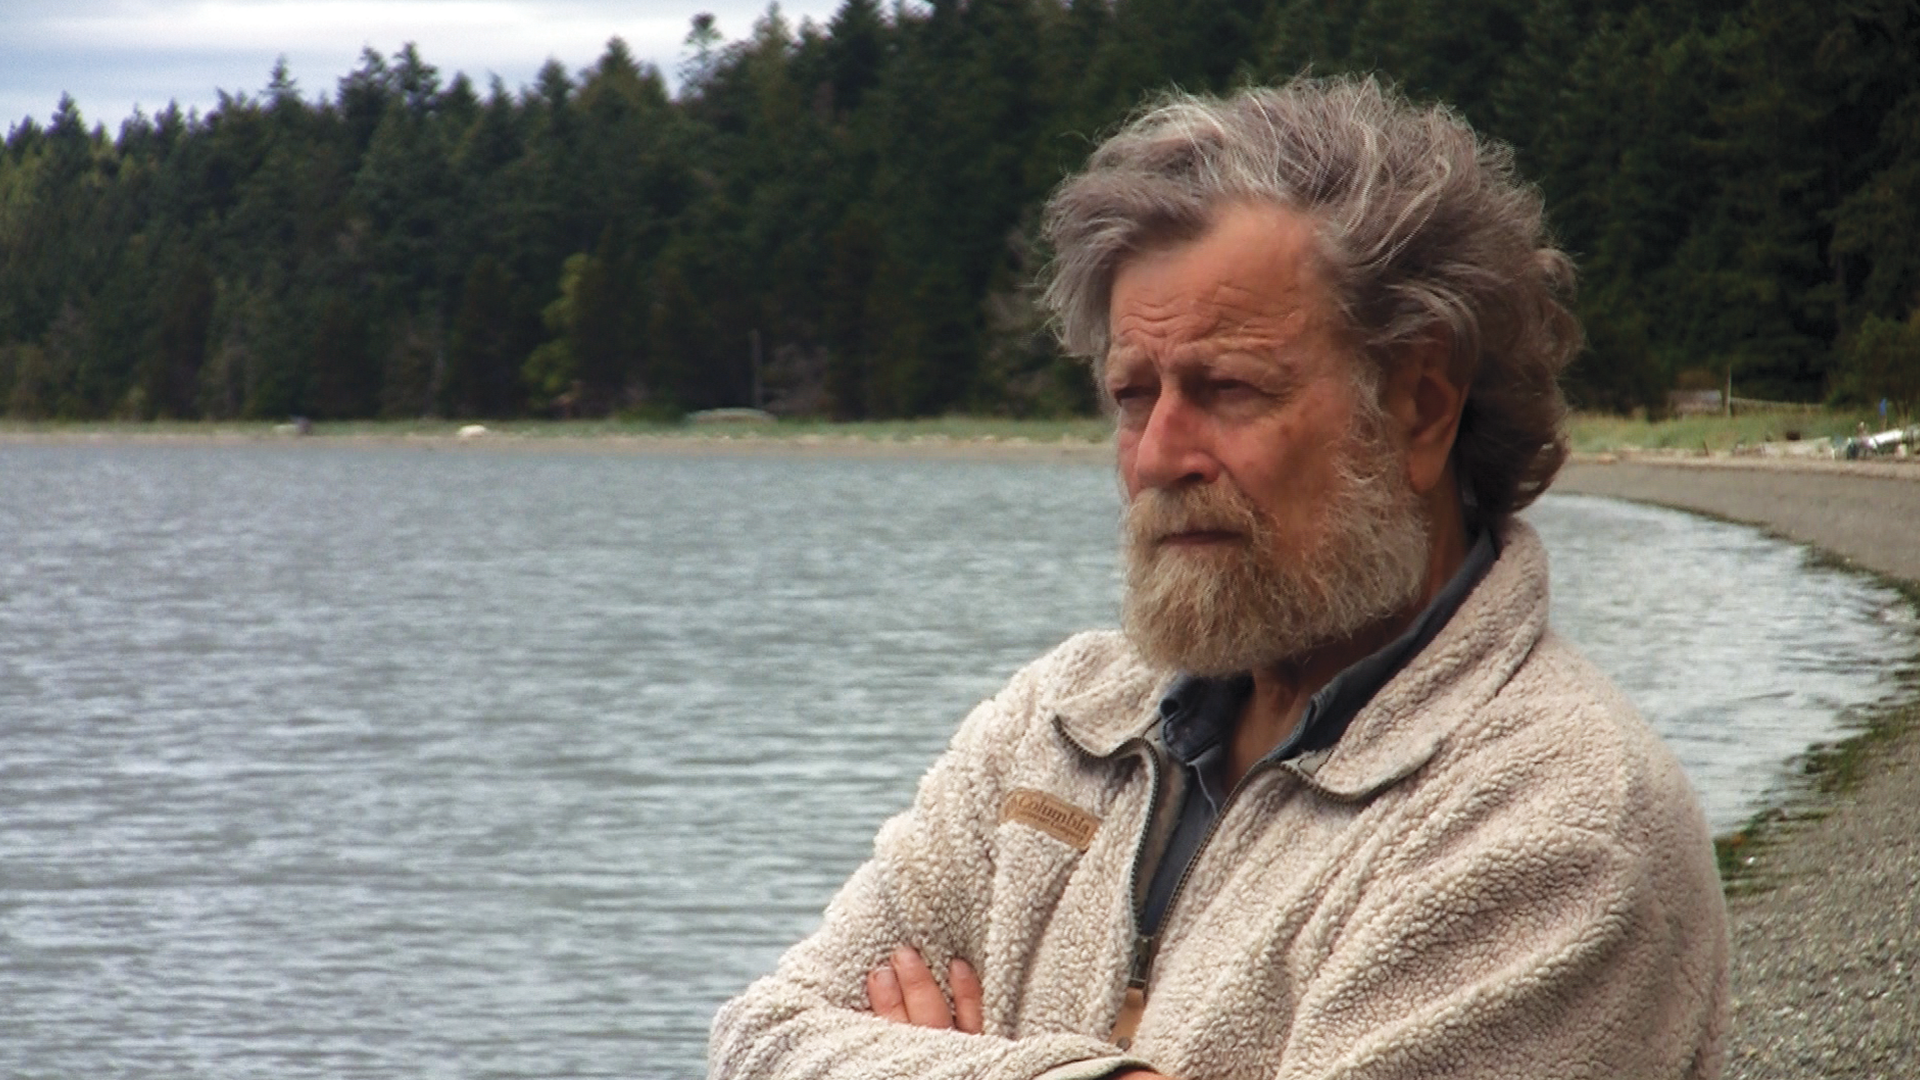 SHINING NIGHT: UN RETRATO DEL COMPOSITOR MORTEN LAURIDSEN